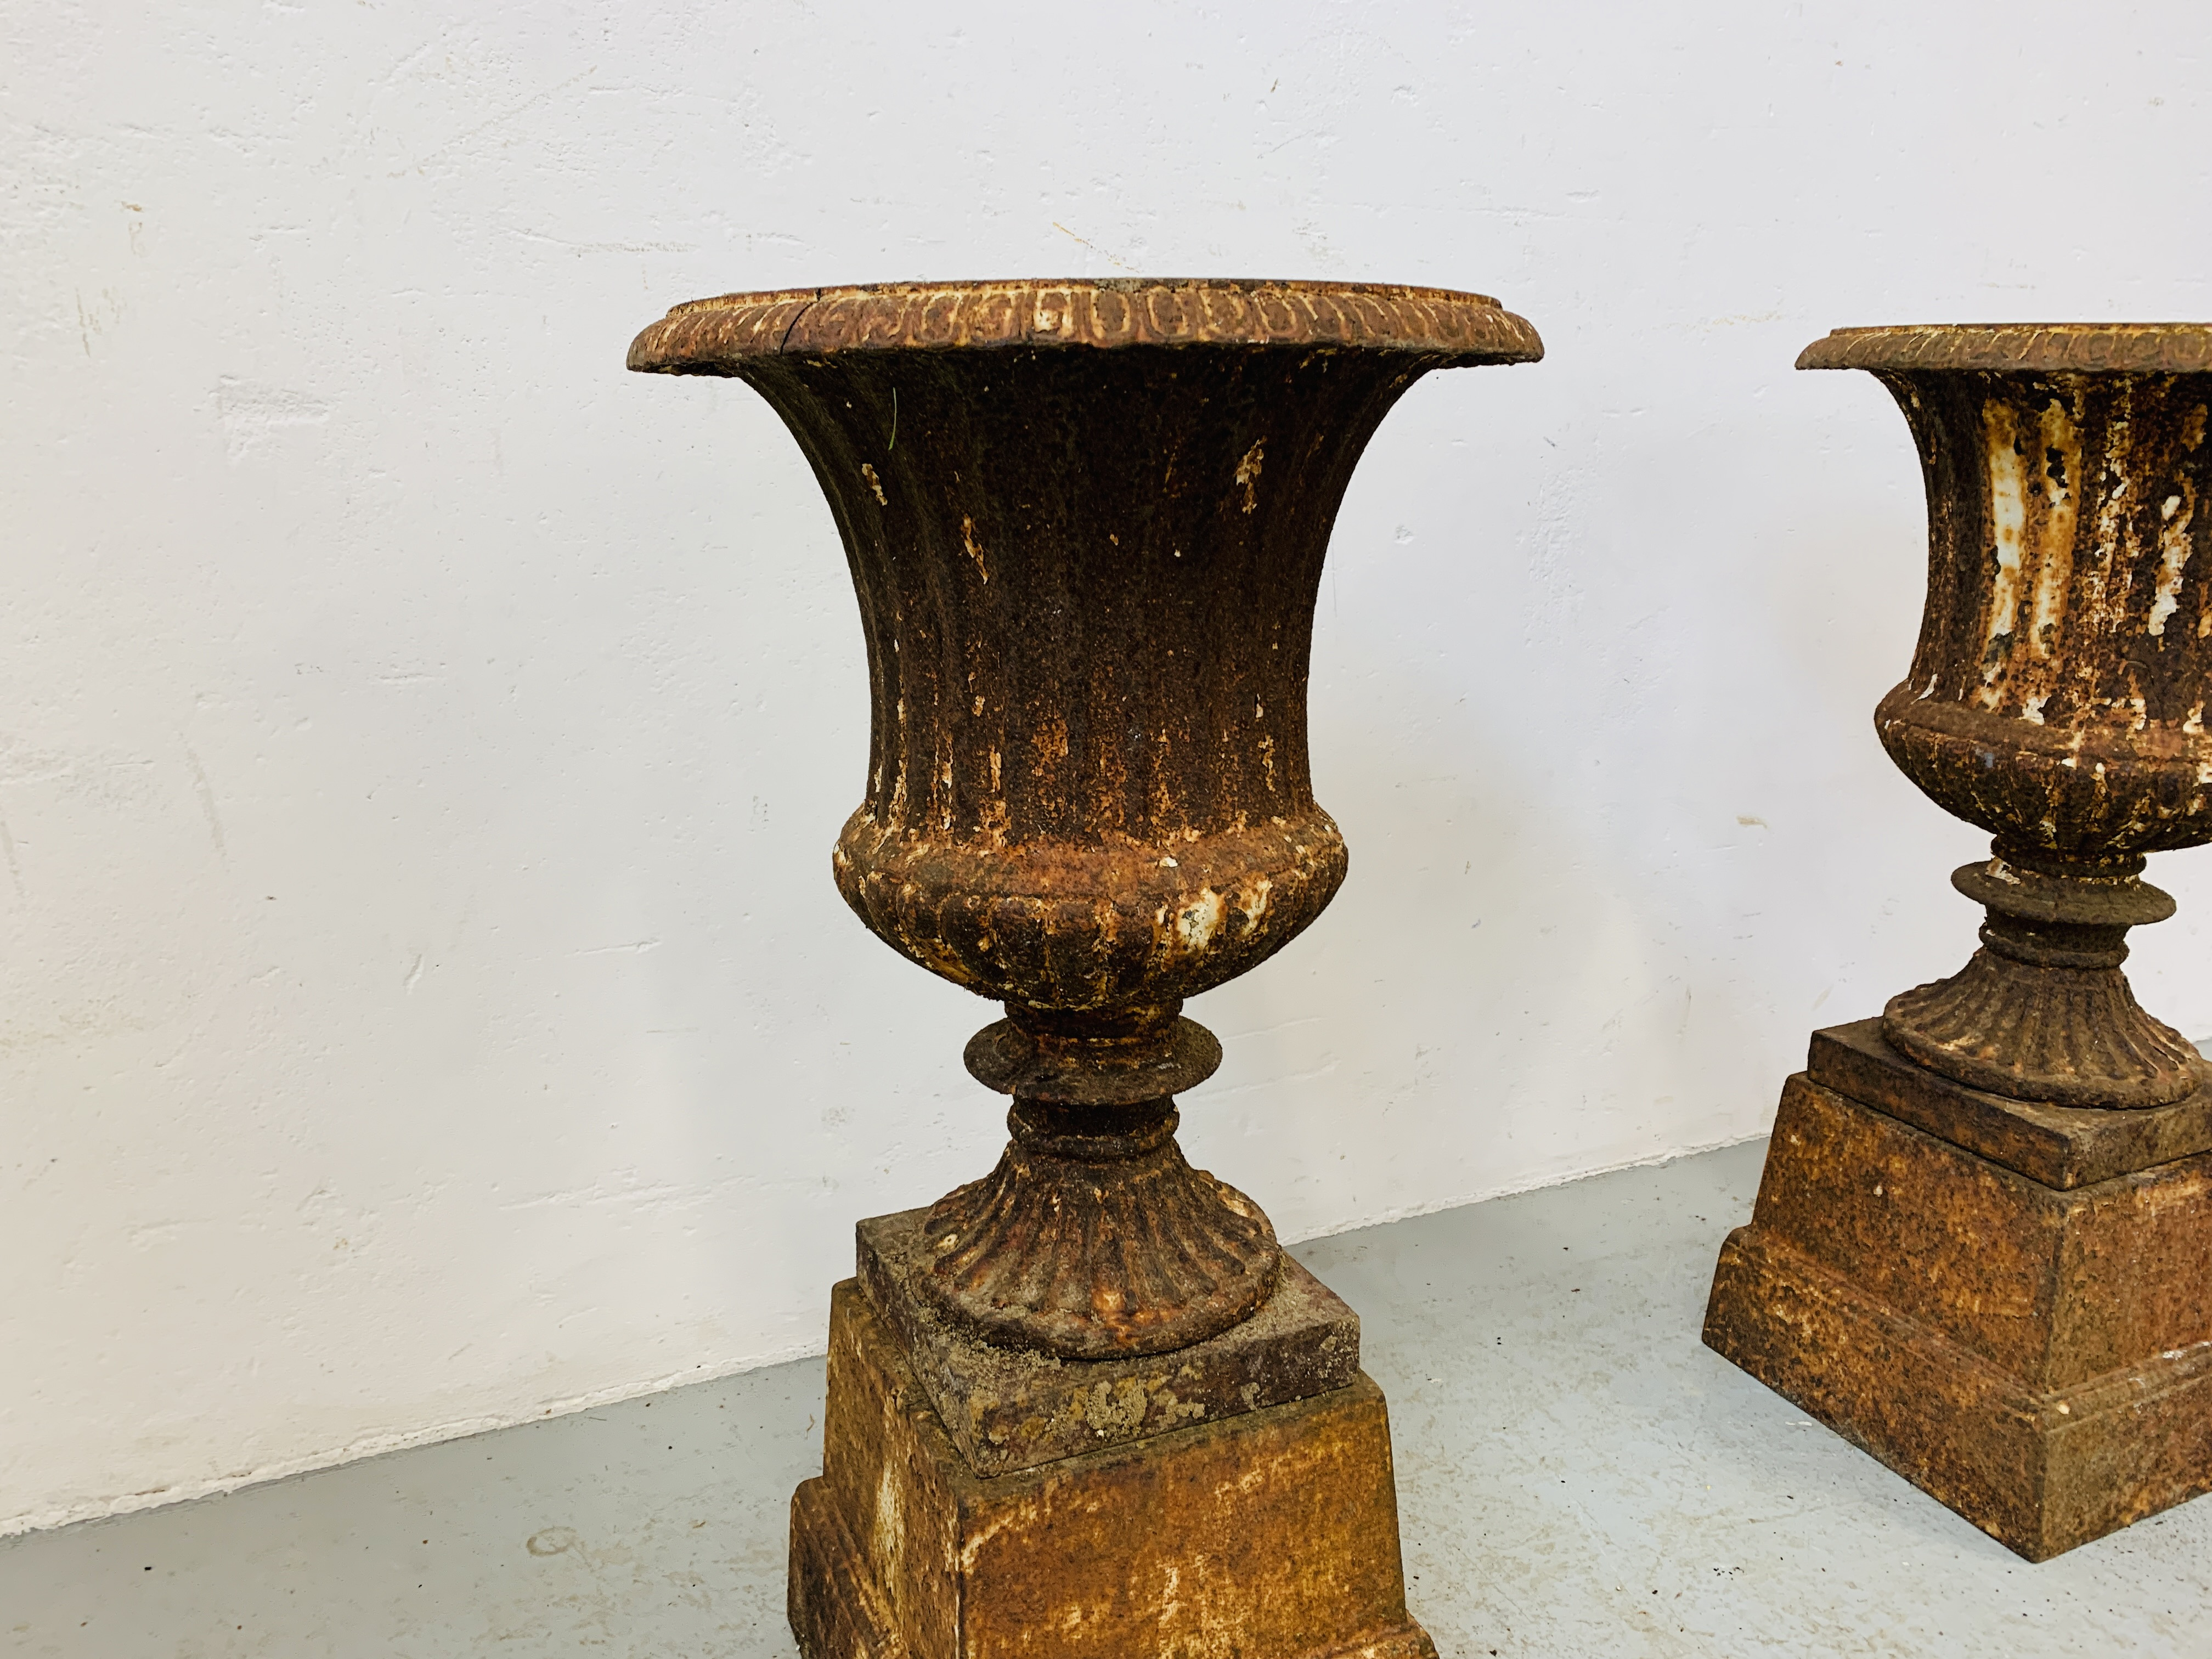 A PAIR OF CAST IRON TULIP SHAPE GARDEN URNS ON STANDS A/F CONDITION - OVERALL HEIGHT 68CM. - Image 6 of 13